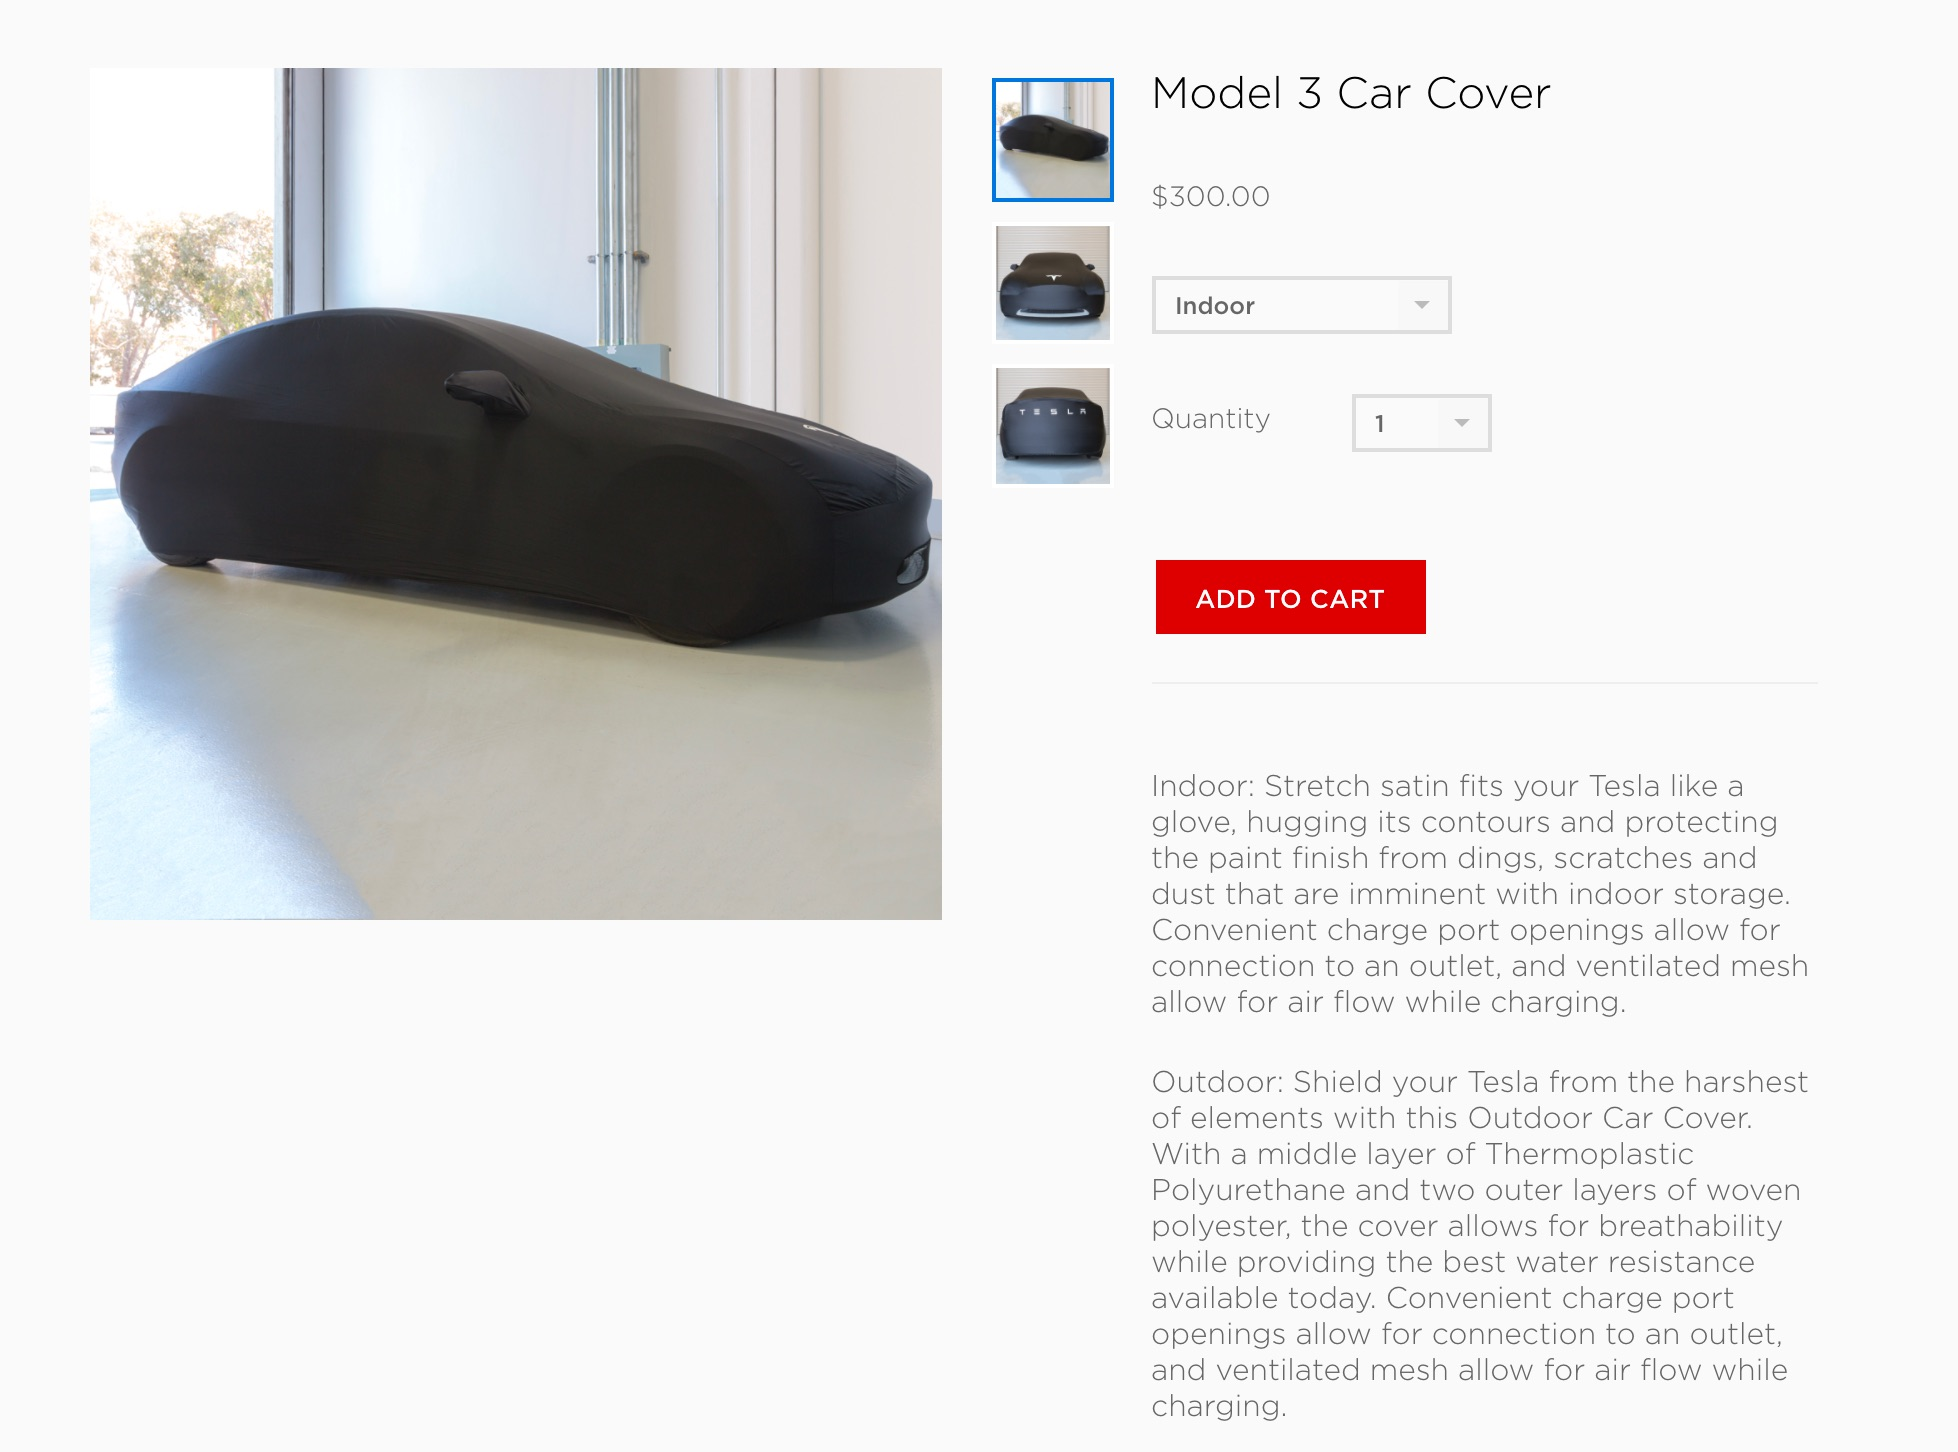 Tesla adds Model 3 car cover as optional accessory to online